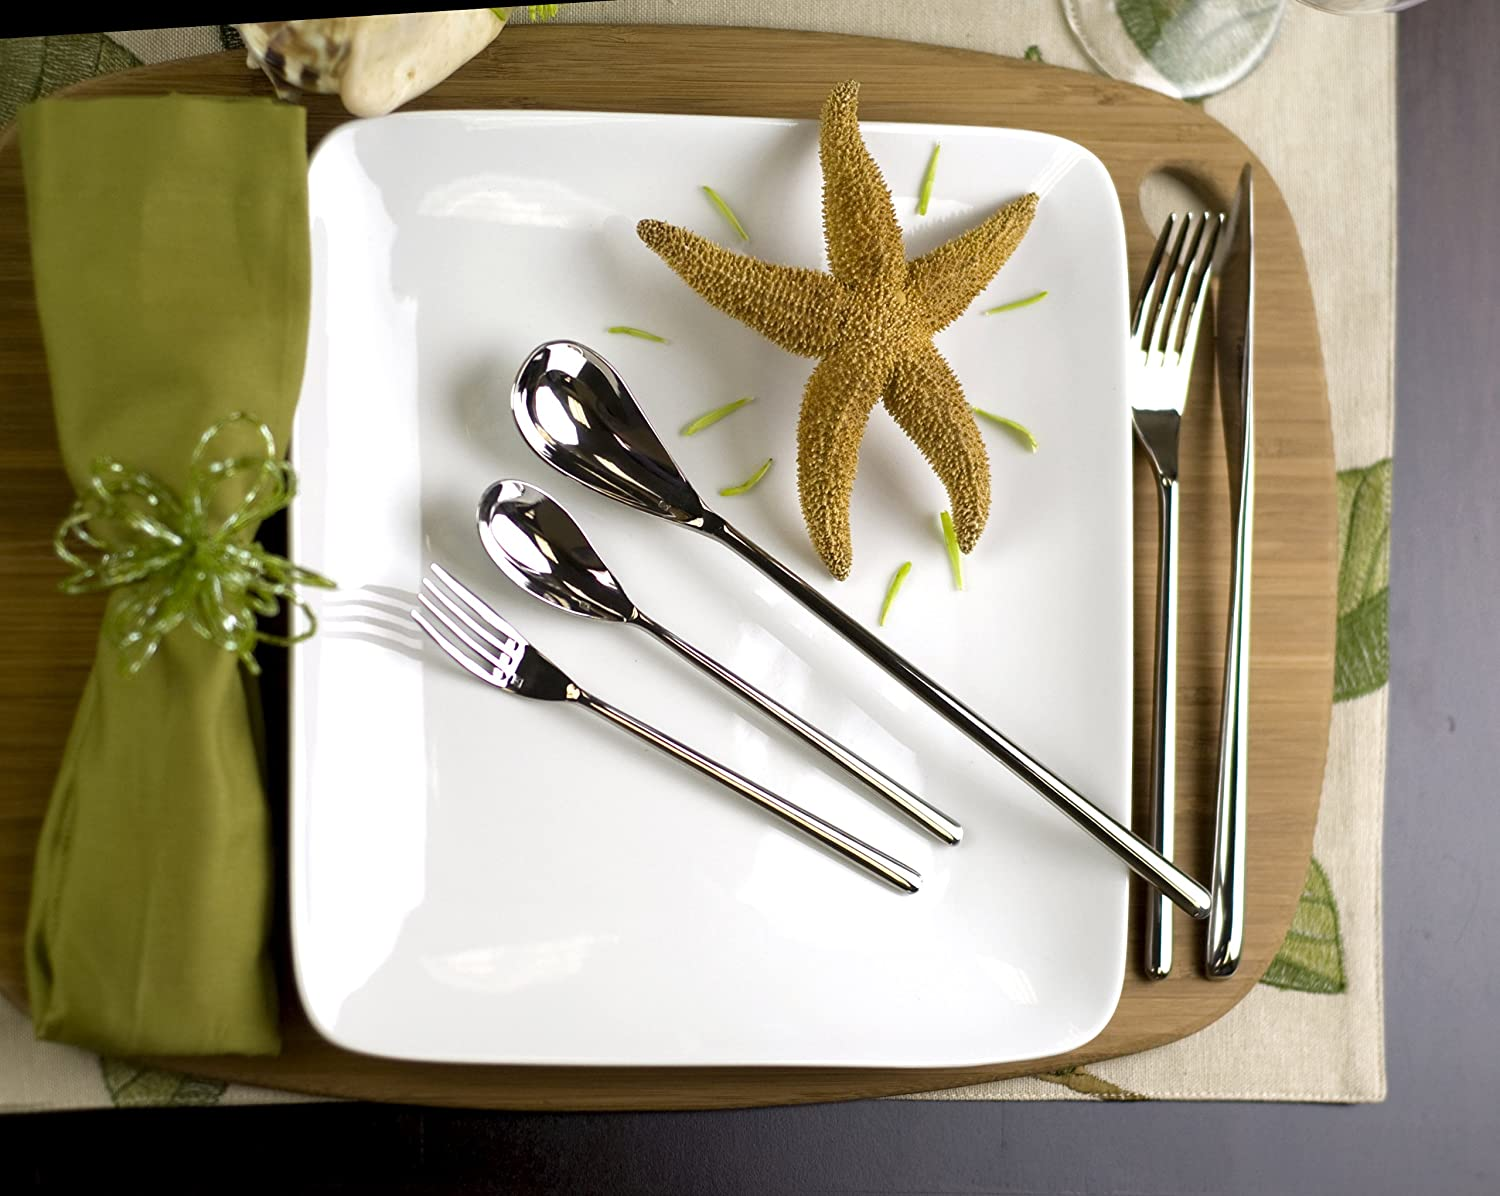 Amazon.com   Fortessa Dragonfly 18/10 Stainless Steel Flatware 5 Piece Place Setting Service for 1 Modern Flatware Flatware Sets & Amazon.com   Fortessa Dragonfly 18/10 Stainless Steel Flatware 5 ...